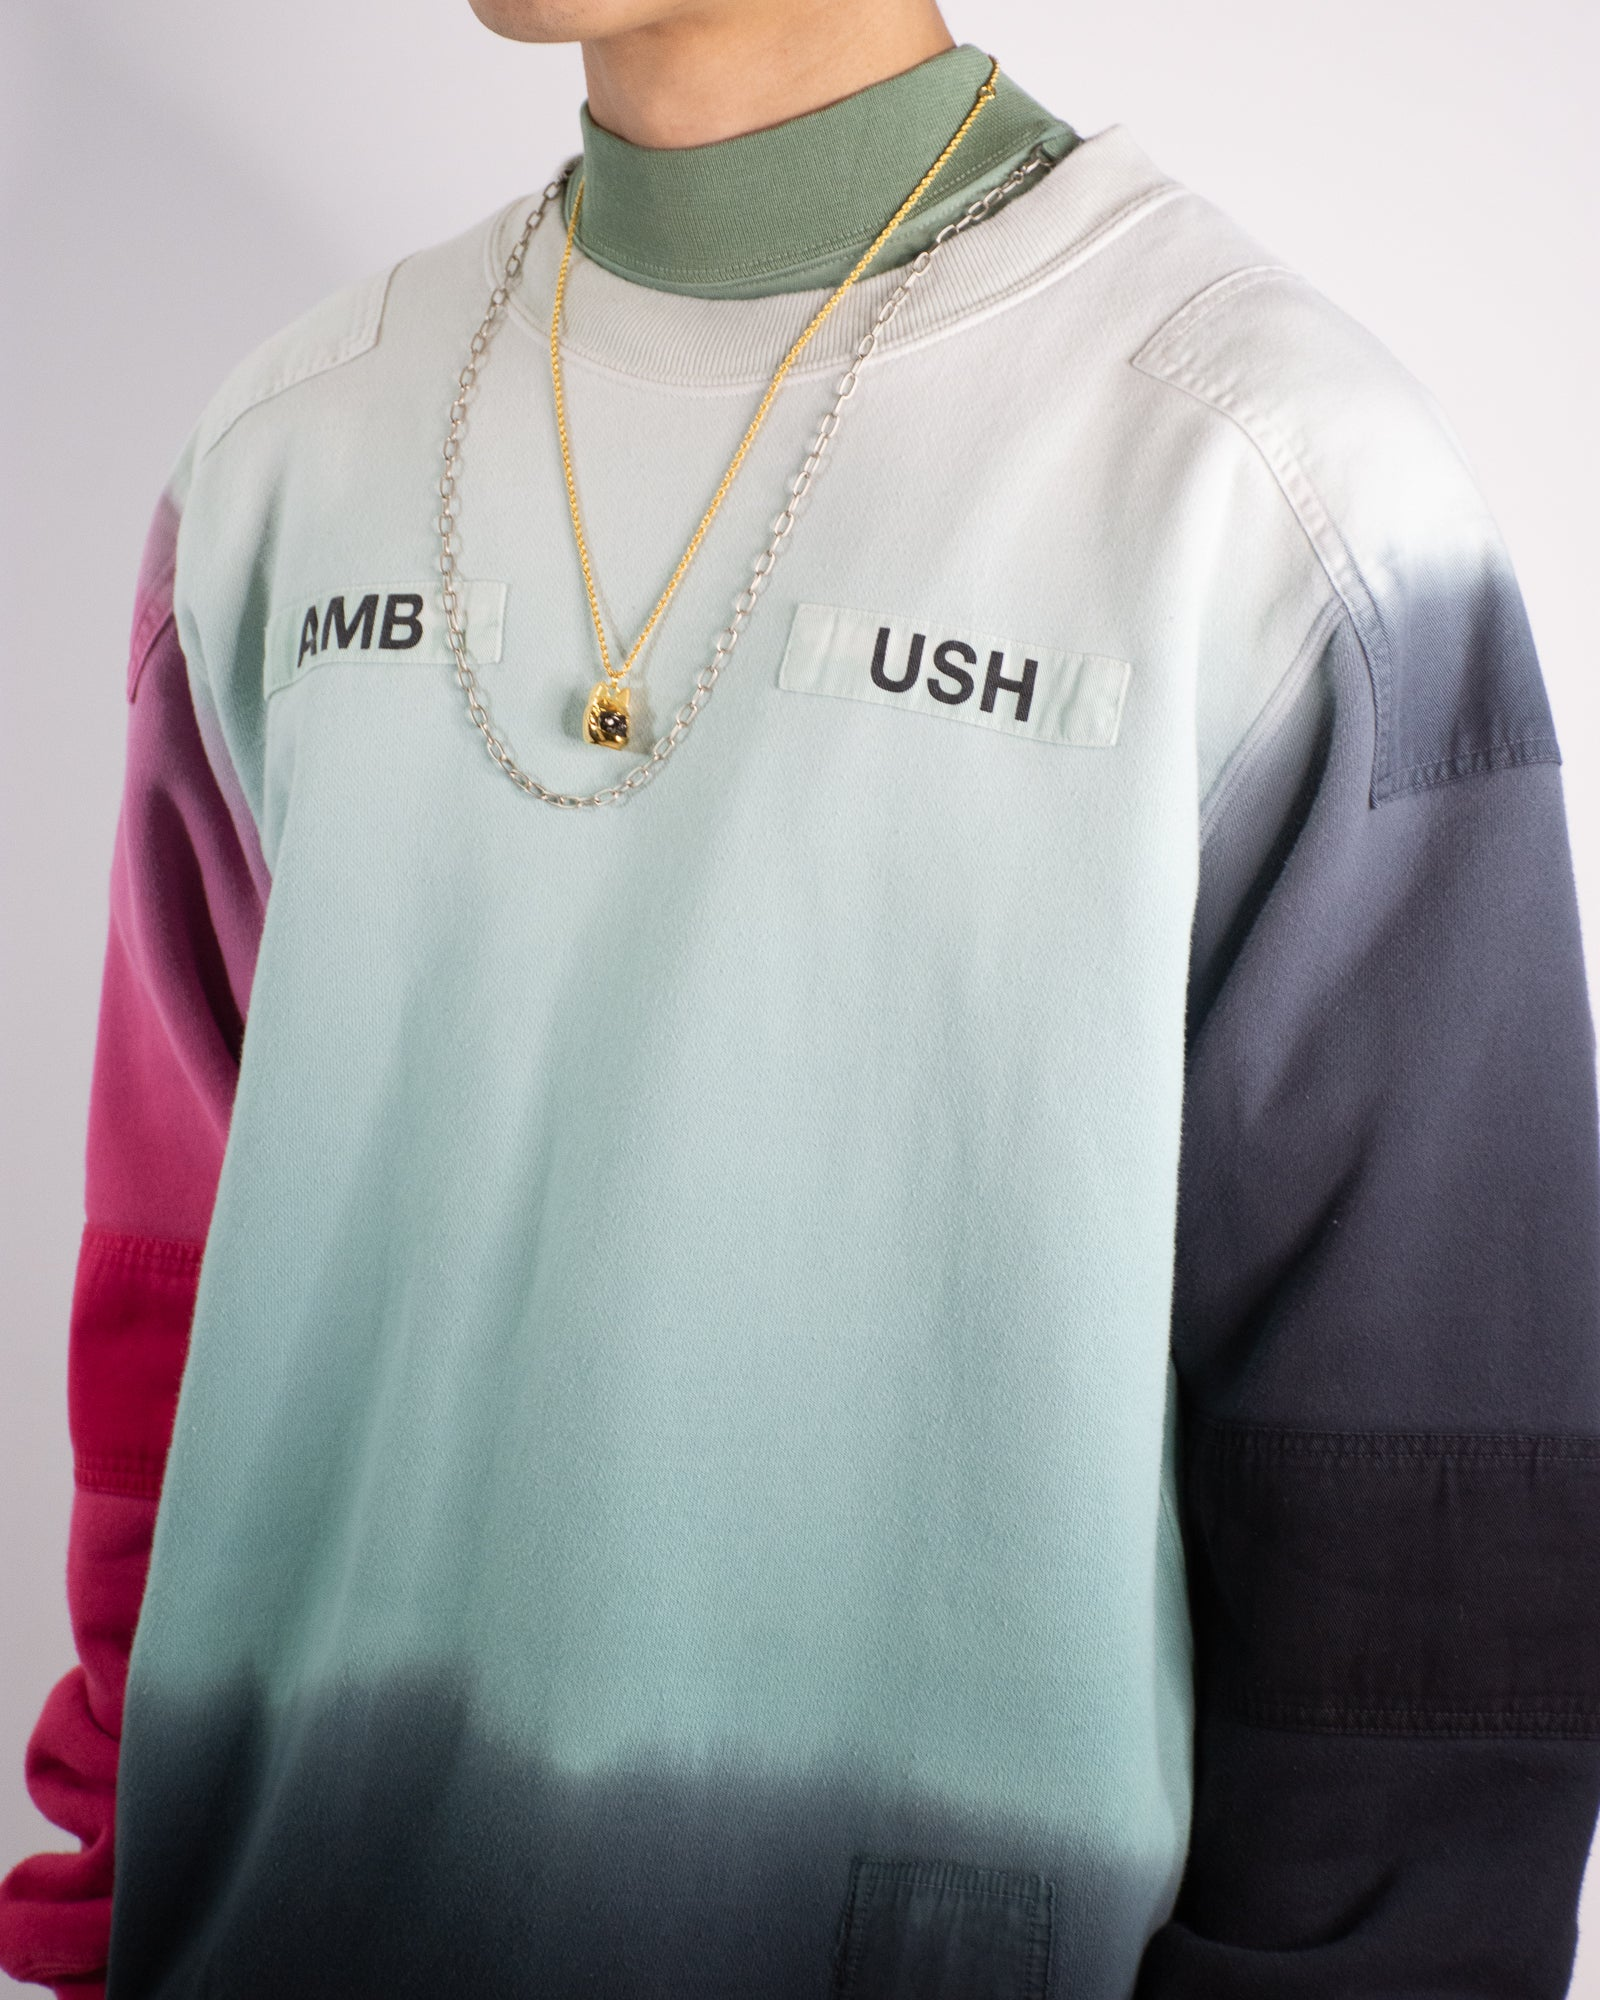 AMBUSH New Patchwork Gradient Sweatshirt